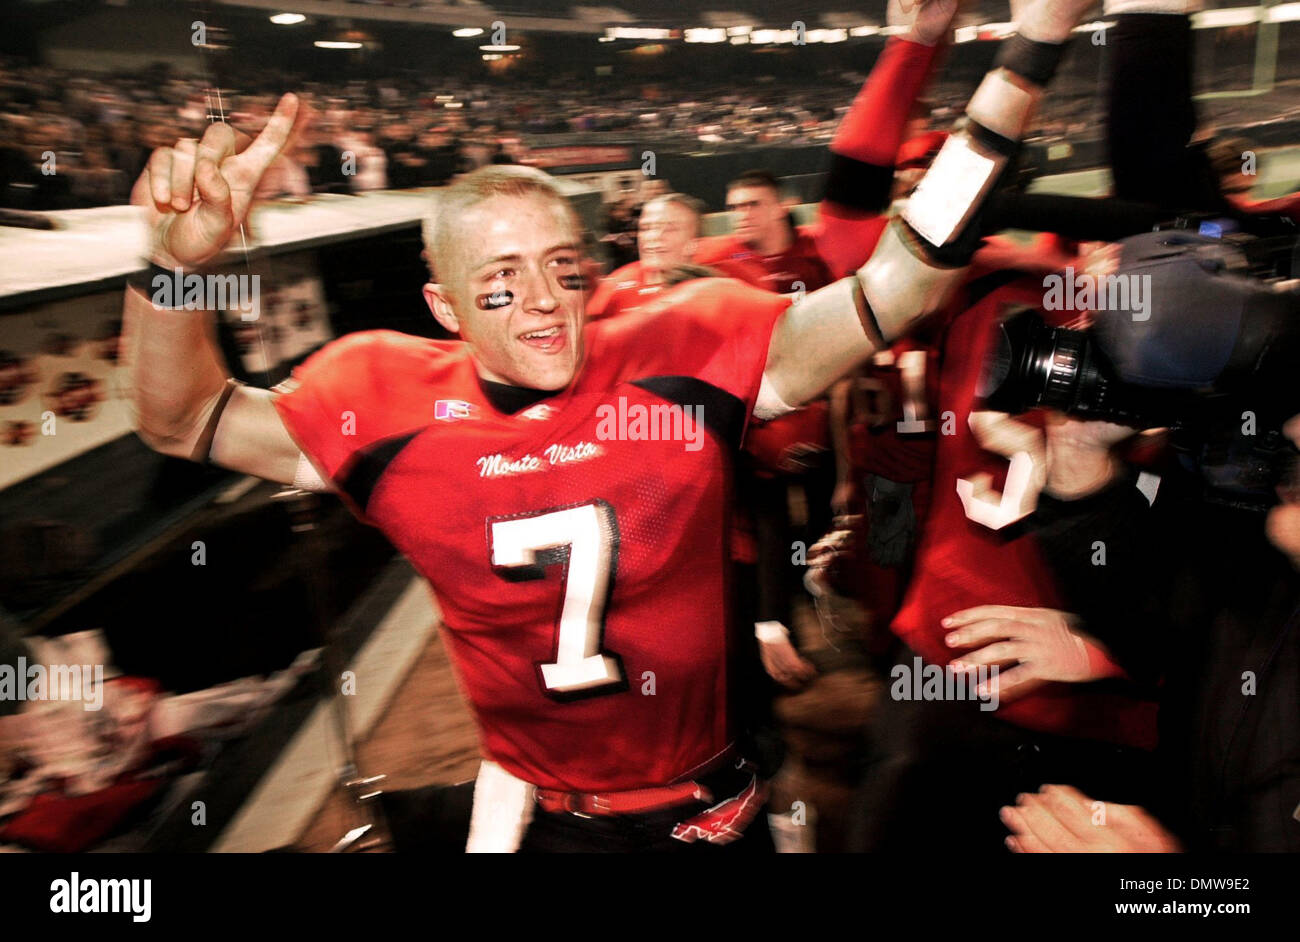 Dec 07, 2002; Oakland, CA, USA; Monte Vista High's quarterback #7 Kyle Wright (cq) celebrates with teammates after winning their NCS 3A football championship game against San Ramon Valley High held at the Network Associates Coliseum in Oakland, Calif., on Saturday, December 7, 2002. Monte Vista won the game 35-14. - Stock Image